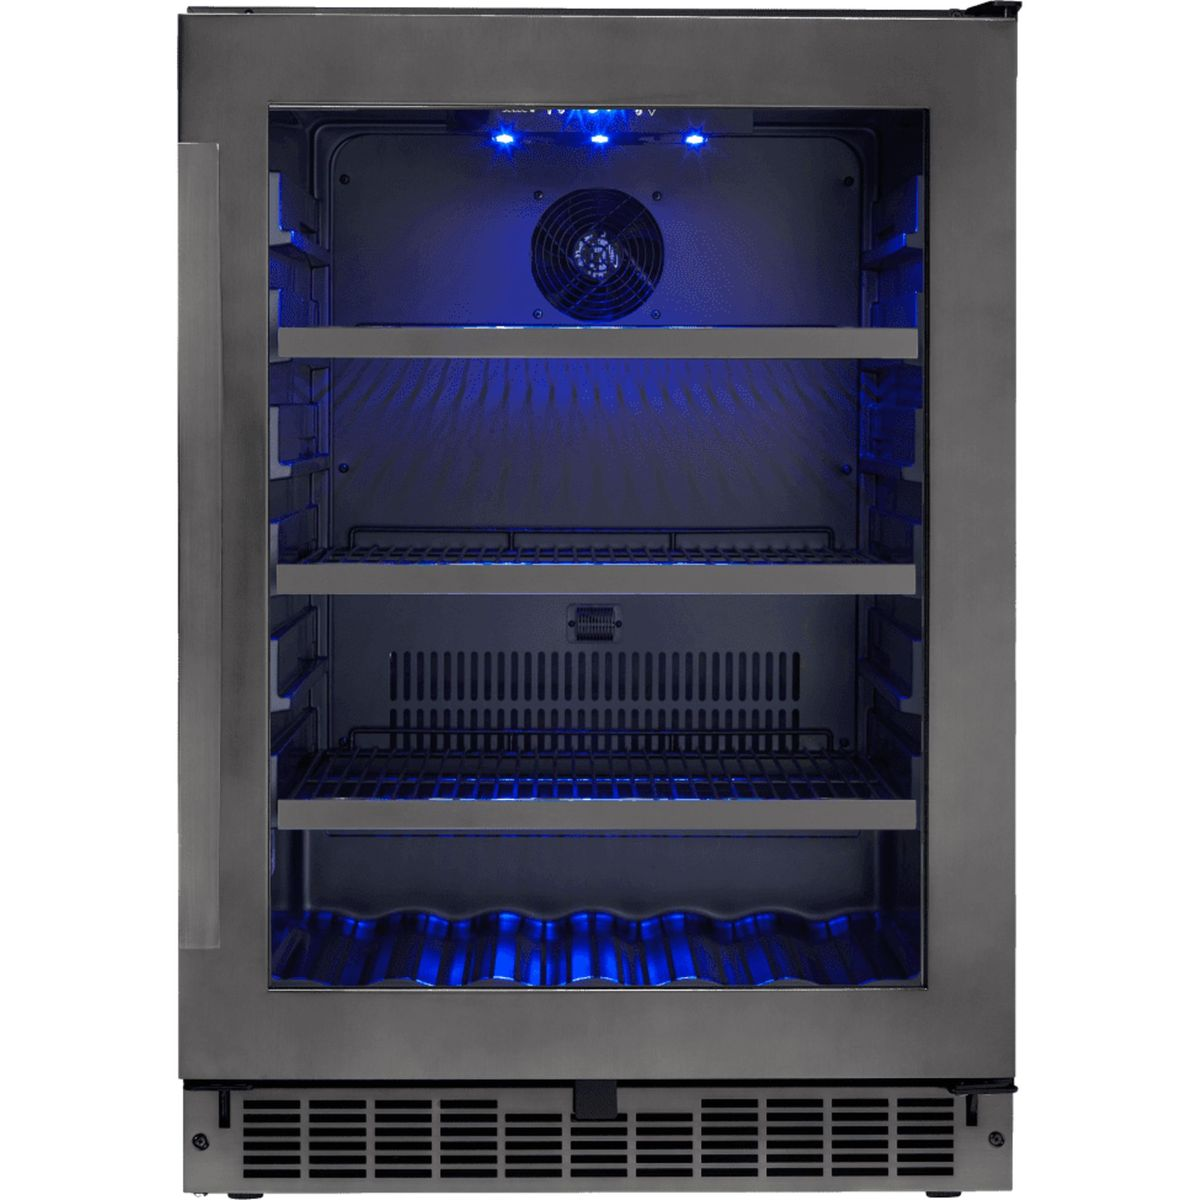 Silhouette Beverage center SSBC056D3B-S in Black Stainless Steel color showcased by Corbeil Electro Store